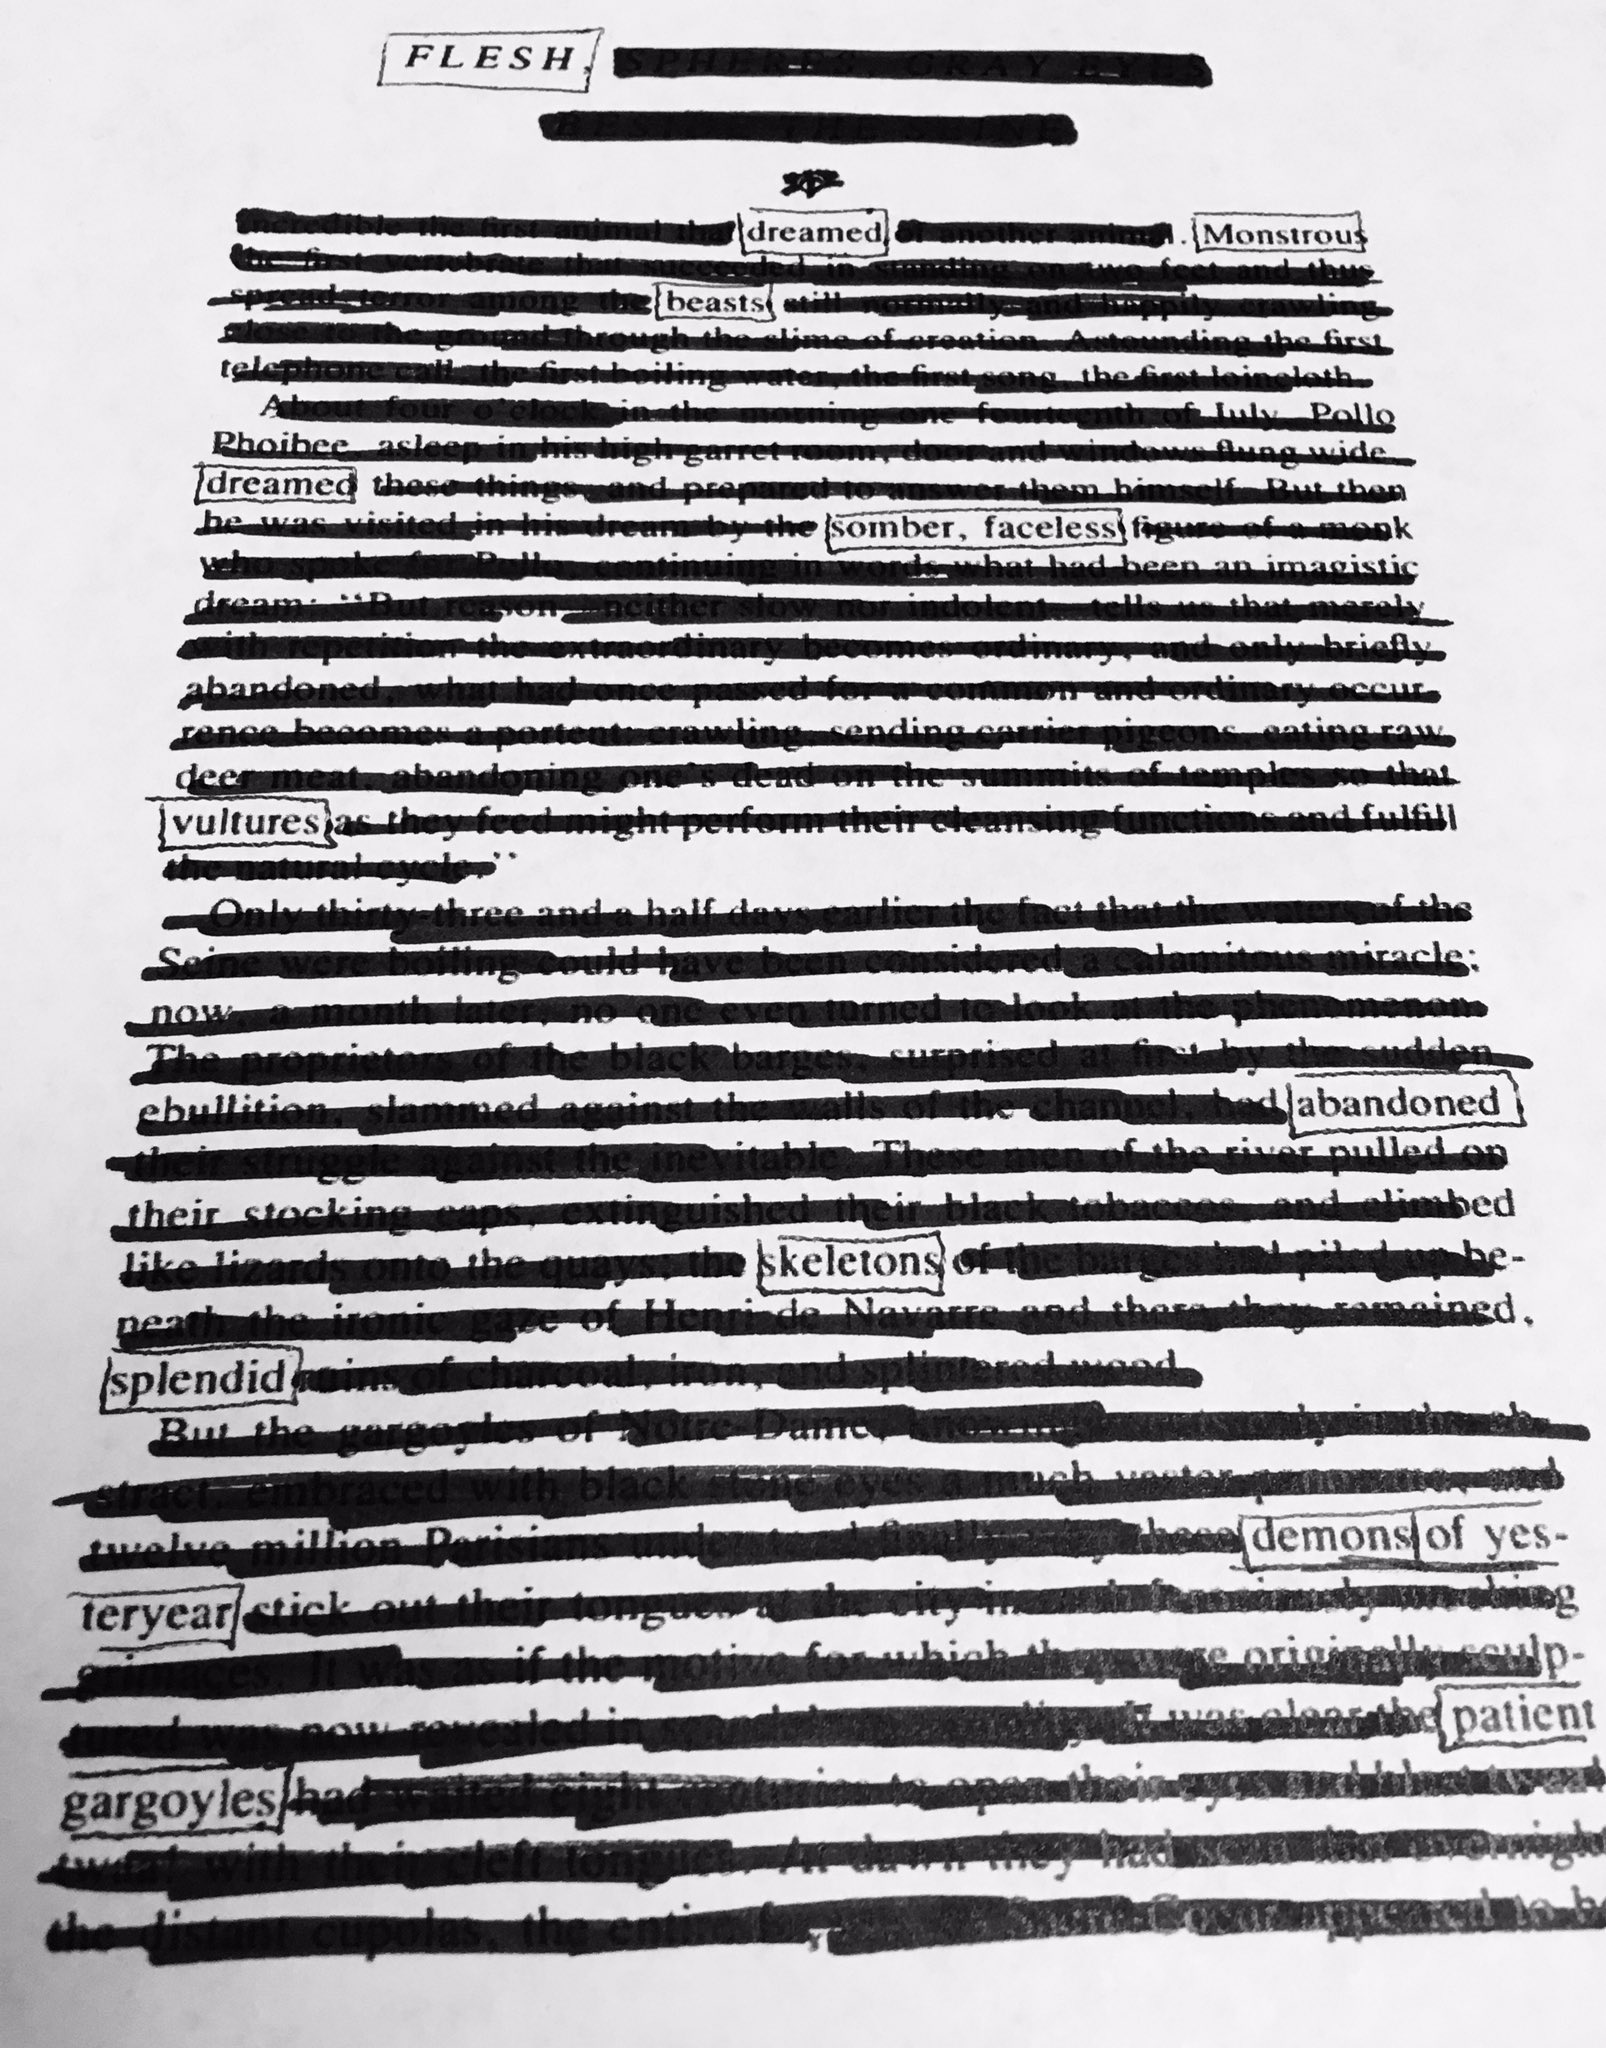 @netnarr flesh dreamed monstrous beasts, dreamed somber, faceless vultures... #netnarr #blackoutpoetry https://t.co/HIgmeTJWJ6